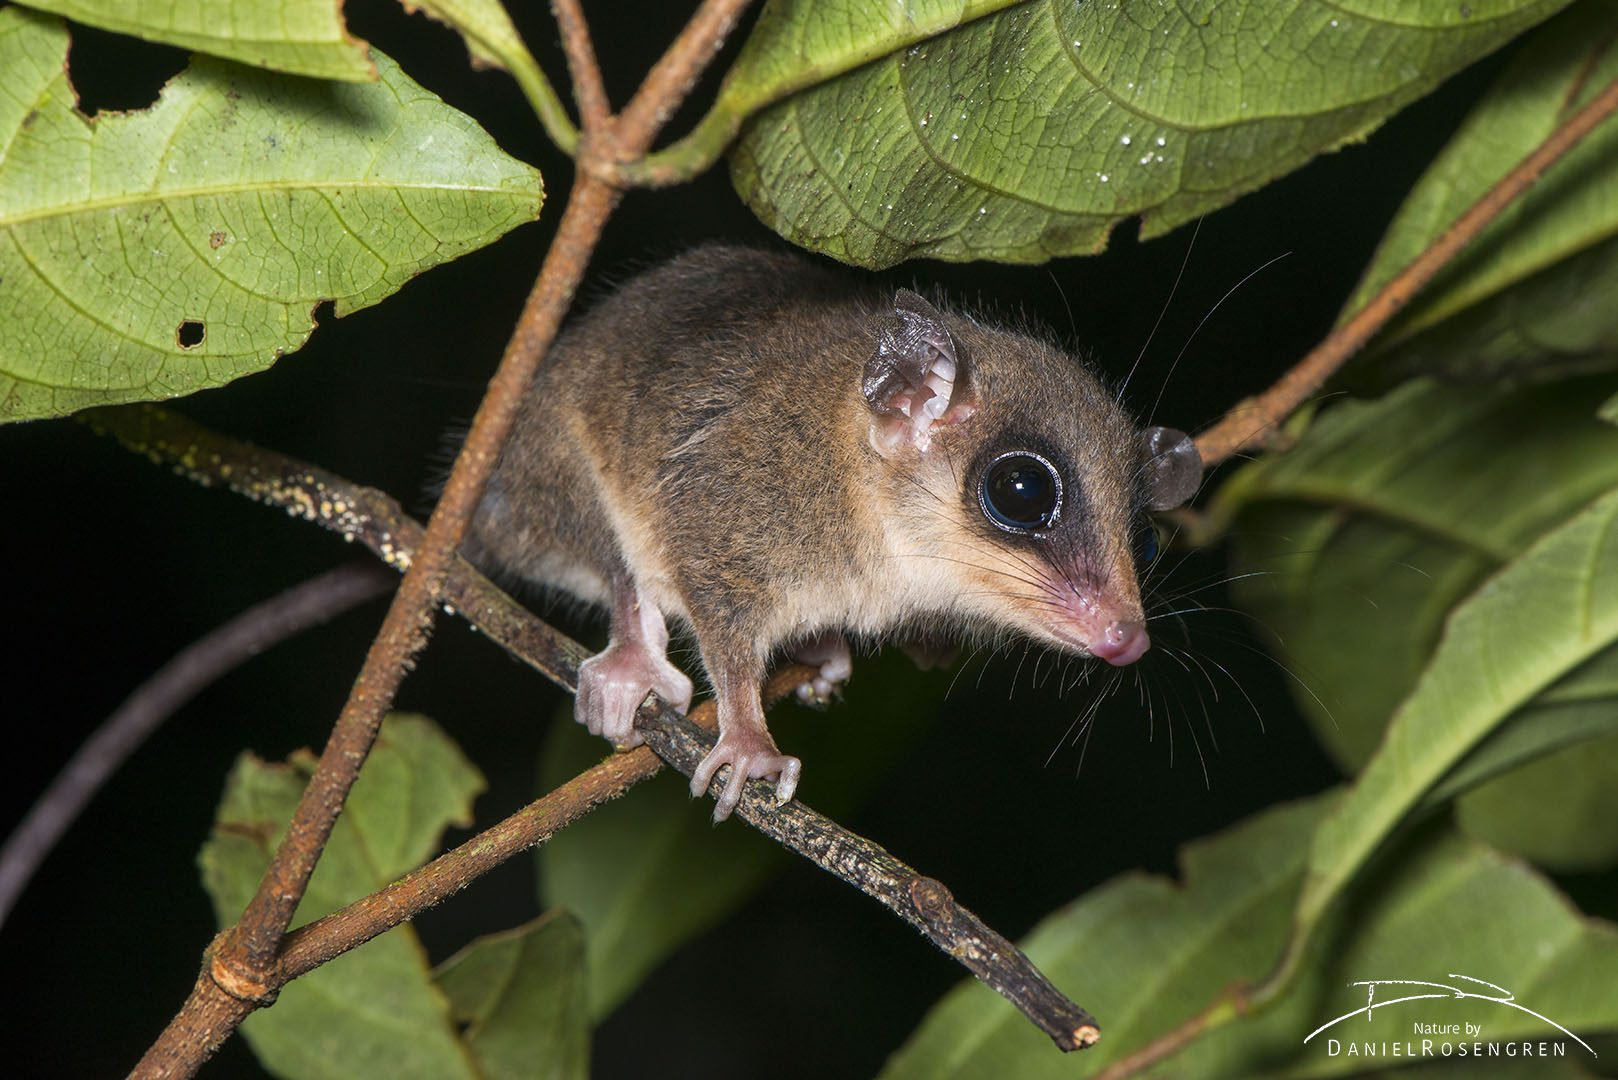 An opossum in the Yaguas. © Daniel Rosengren